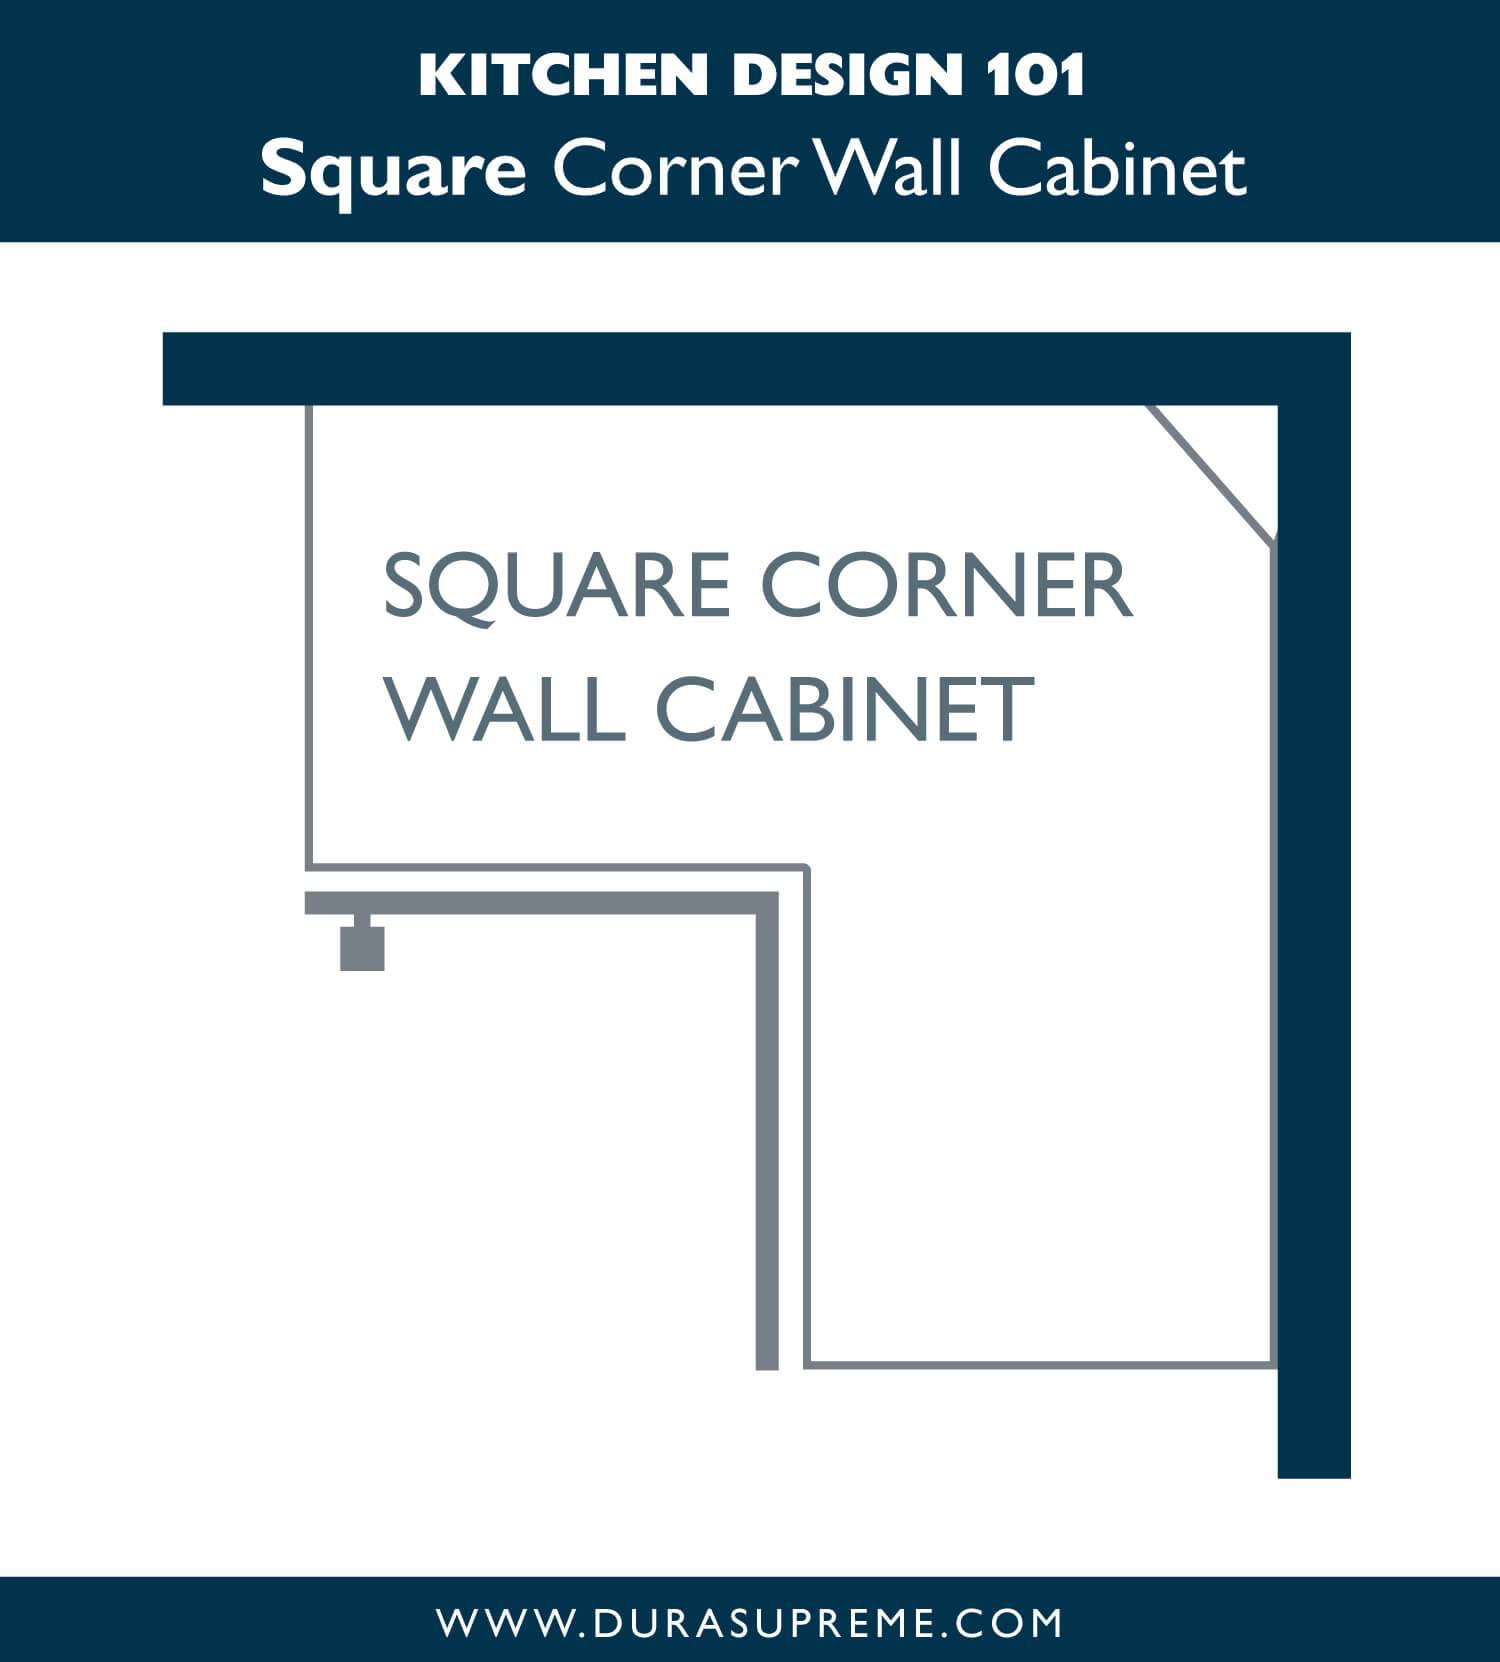 Kitchen Design 101: What is a Square Corner Wall Cabinet?